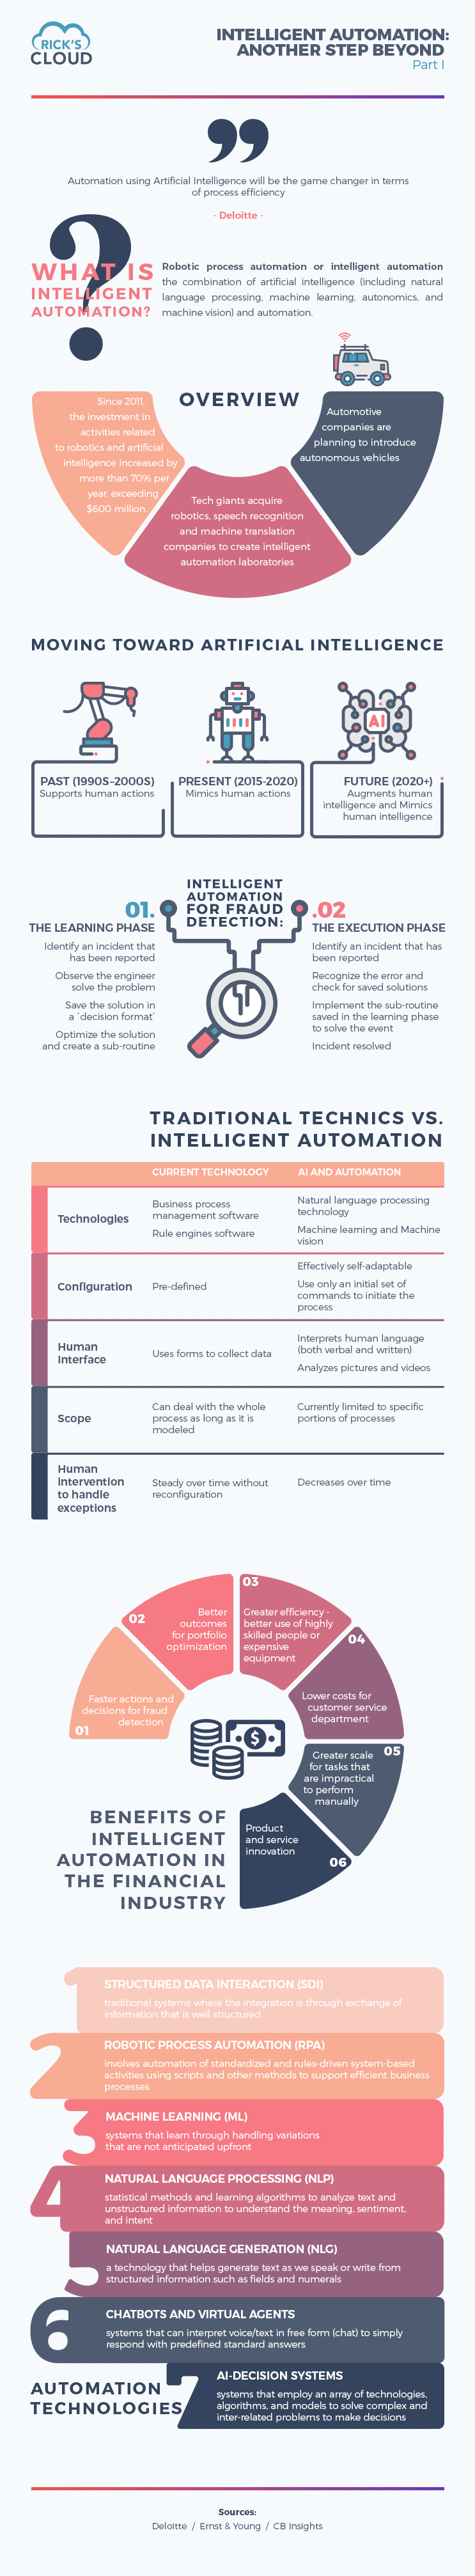 intelligent automation infographic